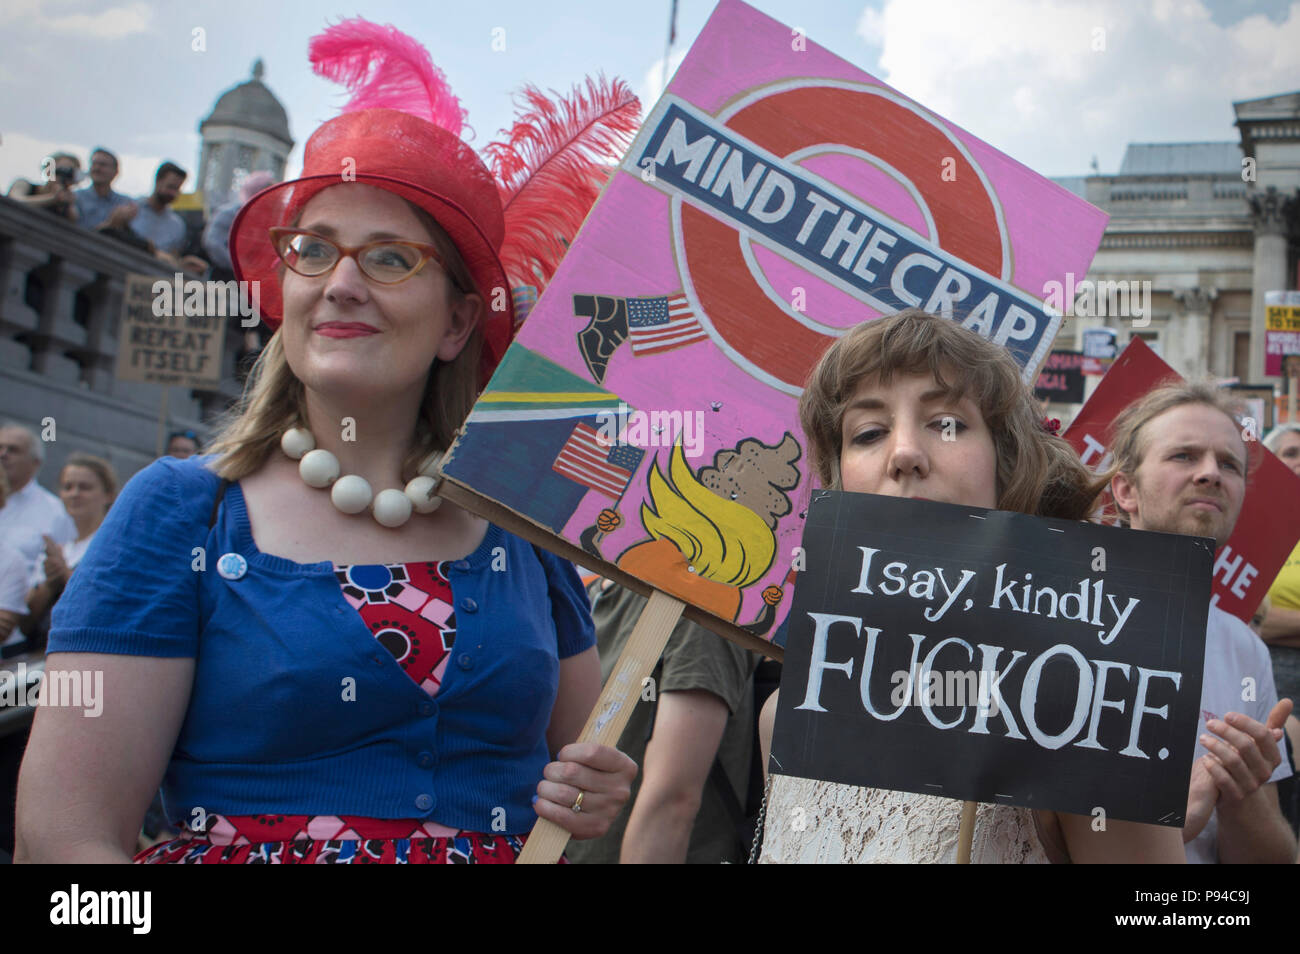 Women hold their handmade placards at the Carnival of Resistance, the anti-Trump protest organised in London, UK on the 13th July 2018. - Stock Image